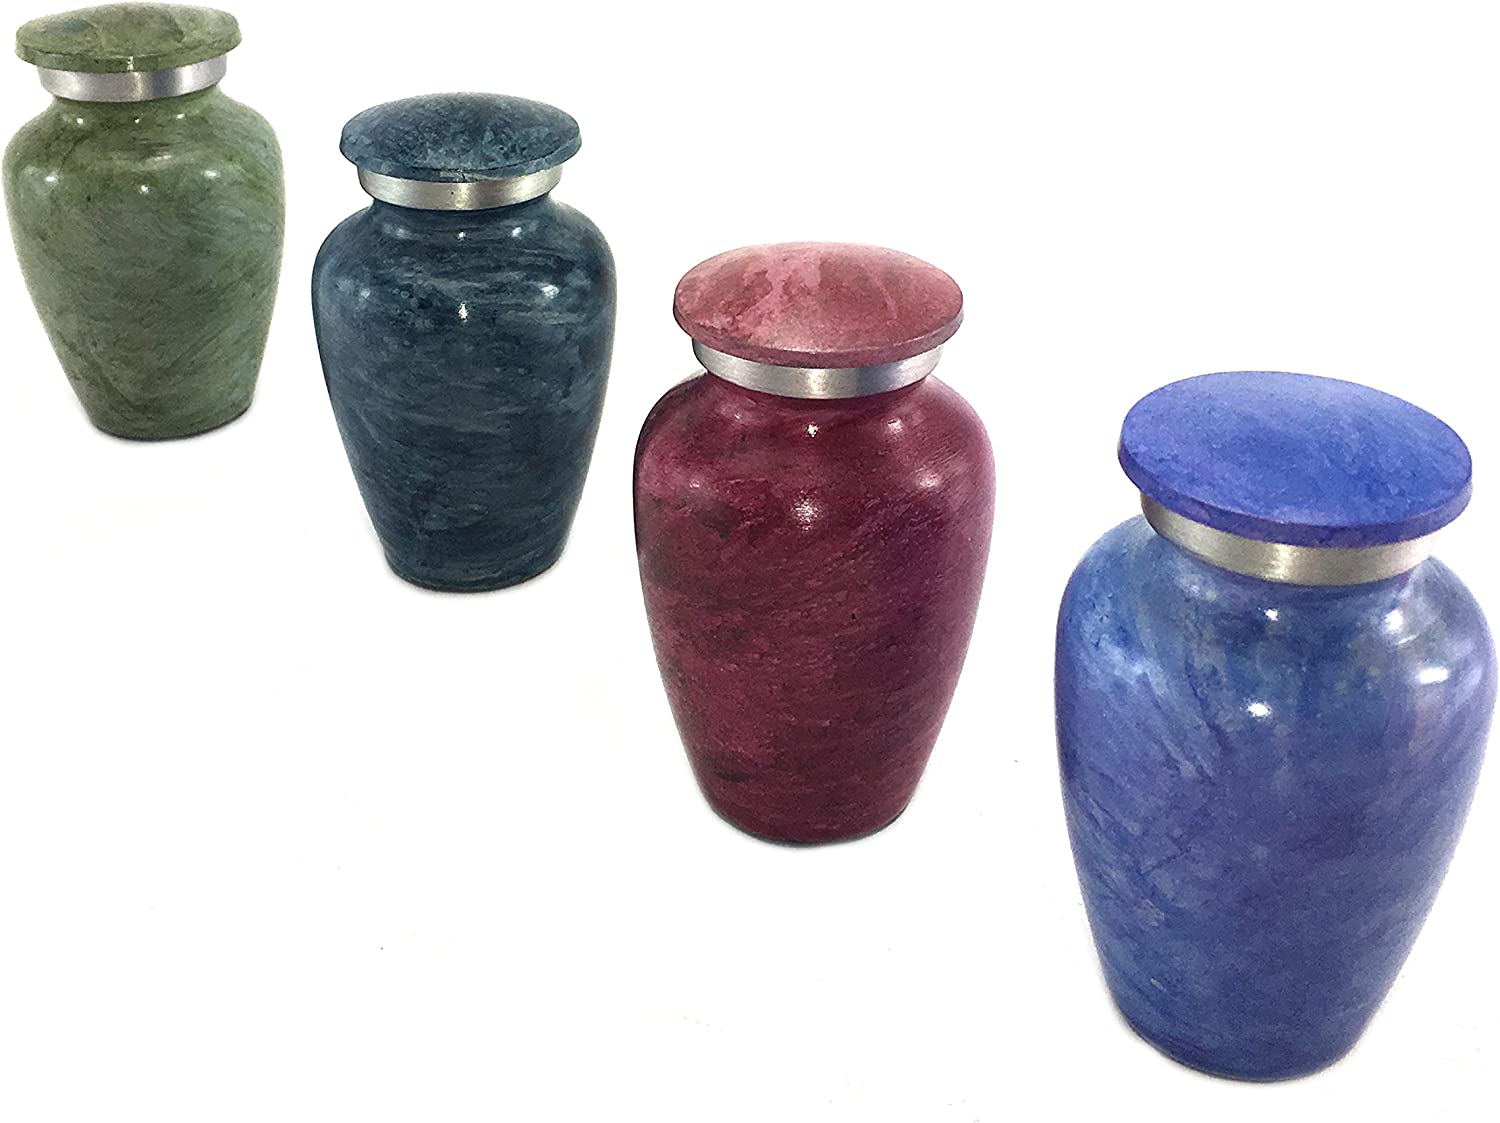 Small Keepsake Cremation Urn for Ashes Handmade Funeral Urns Set of 4 Premium Quality Memorial Mini Keepsake Urns Handcrafted to Perfection Engraved with Unique Design